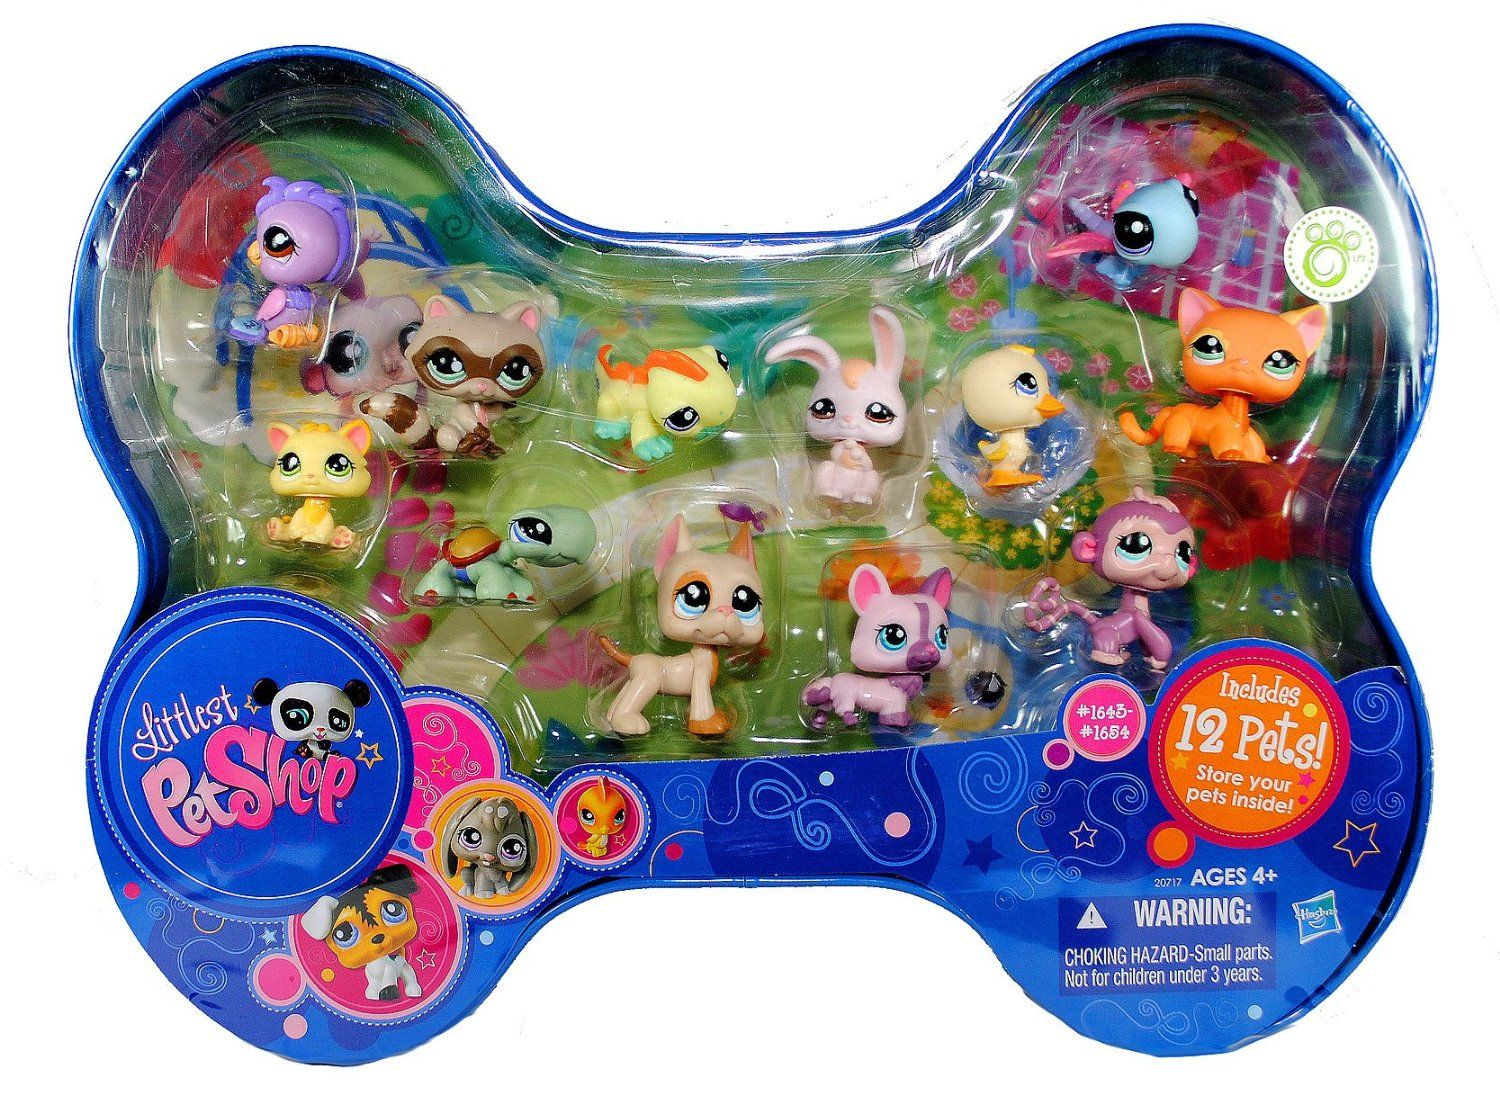 Amazon Com Hasbro Year 2009 Littlest Pet Shop 12 Pets Series Bobble Head Pet Figure Case Set With Orange Short Little Pet Shop Toys Littlest Pet Shop Pet Shop